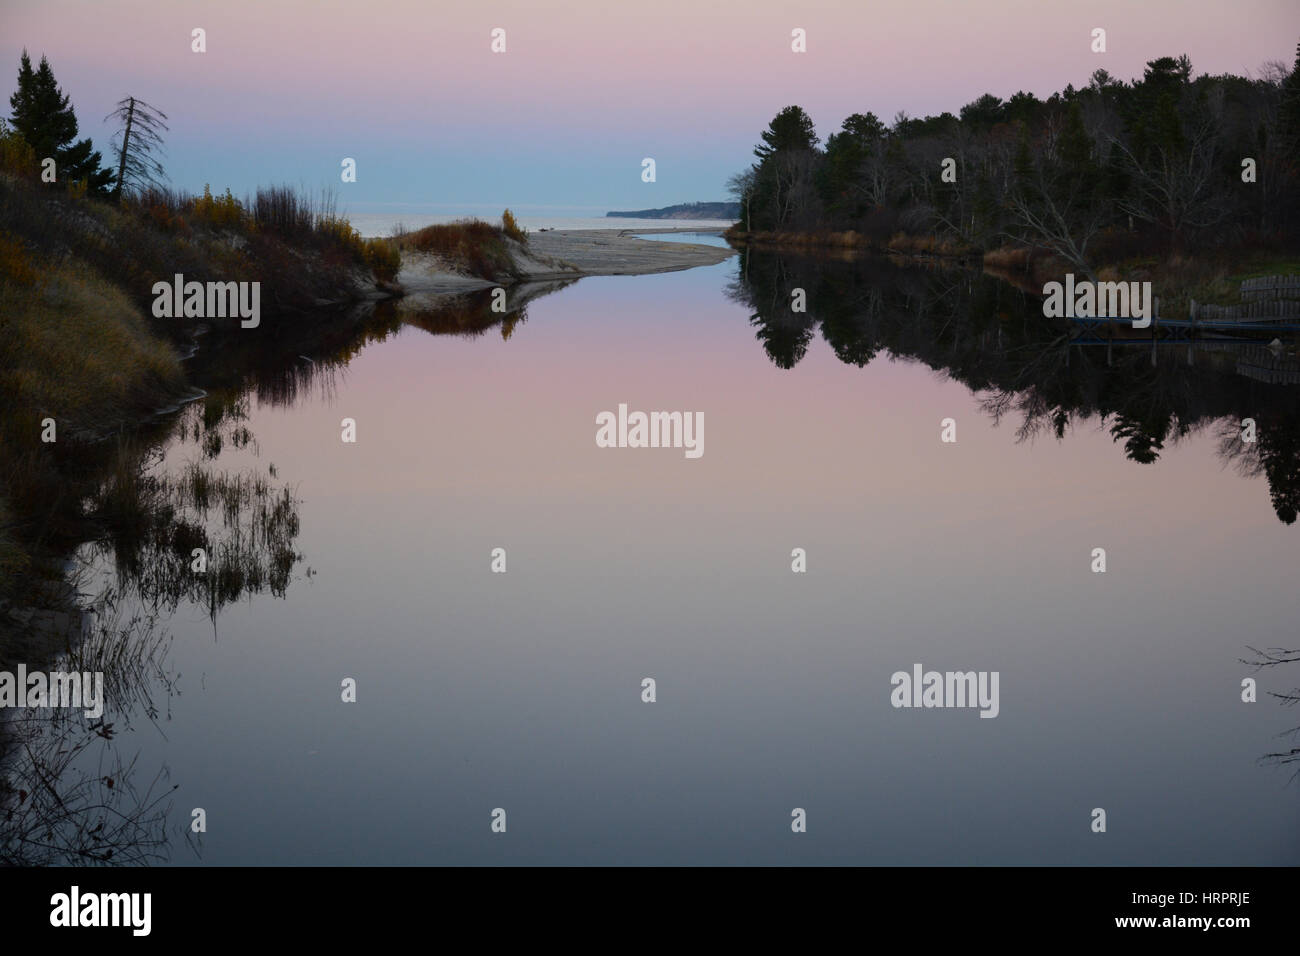 Looking down a very calm river after the sunset with the pink and blue sky and trees reflecting in the water. Stock Photo